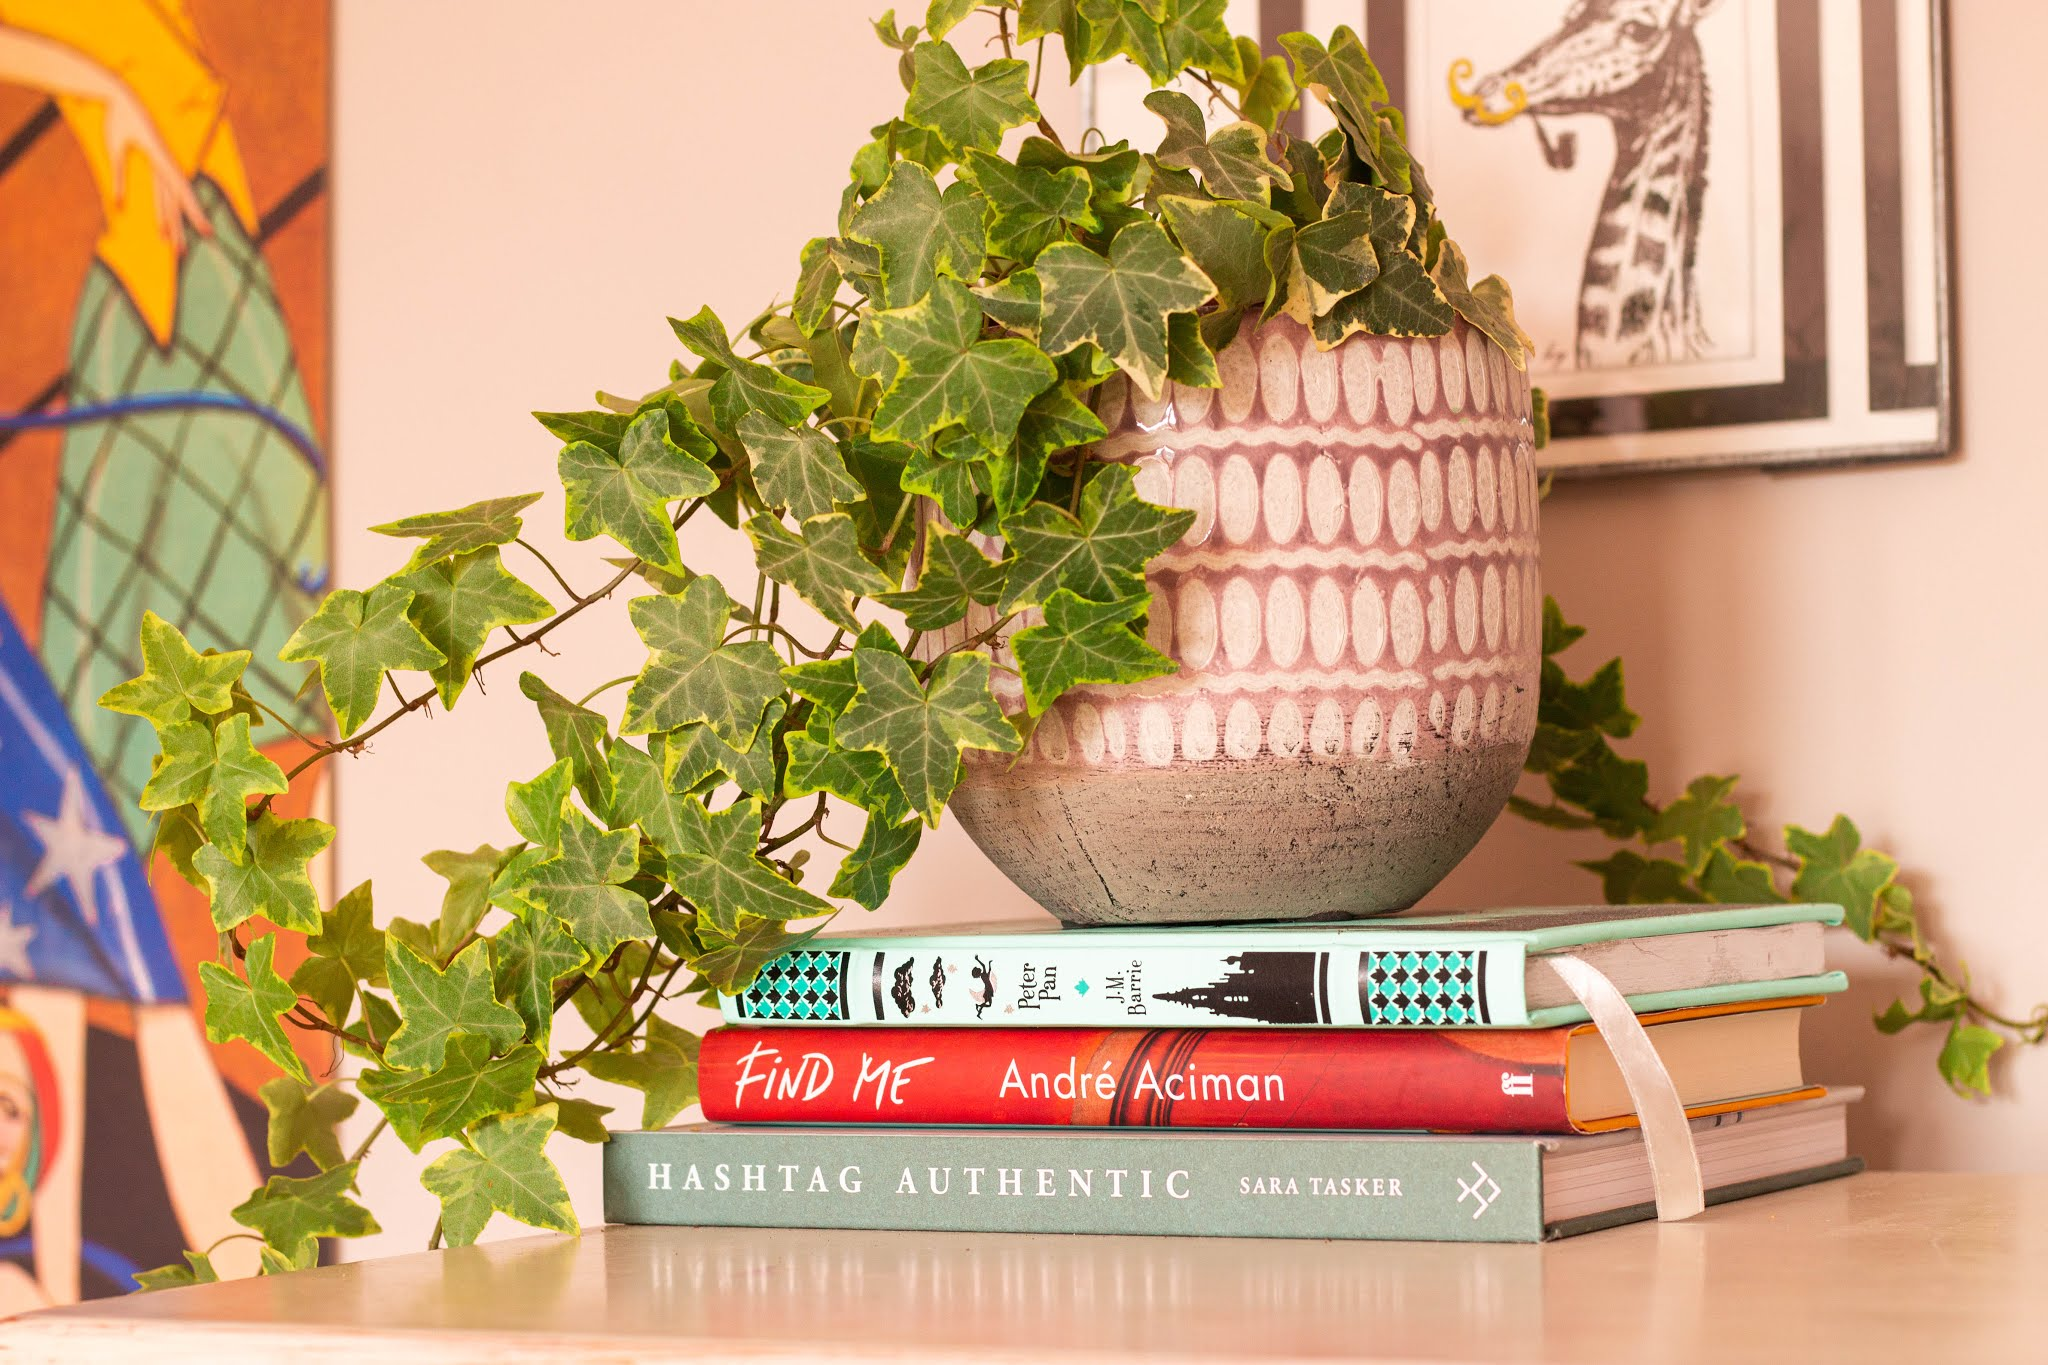 Bedroom details, plant, and books. Interior design and styling tips, 25% off Photowall Sweden Discount code